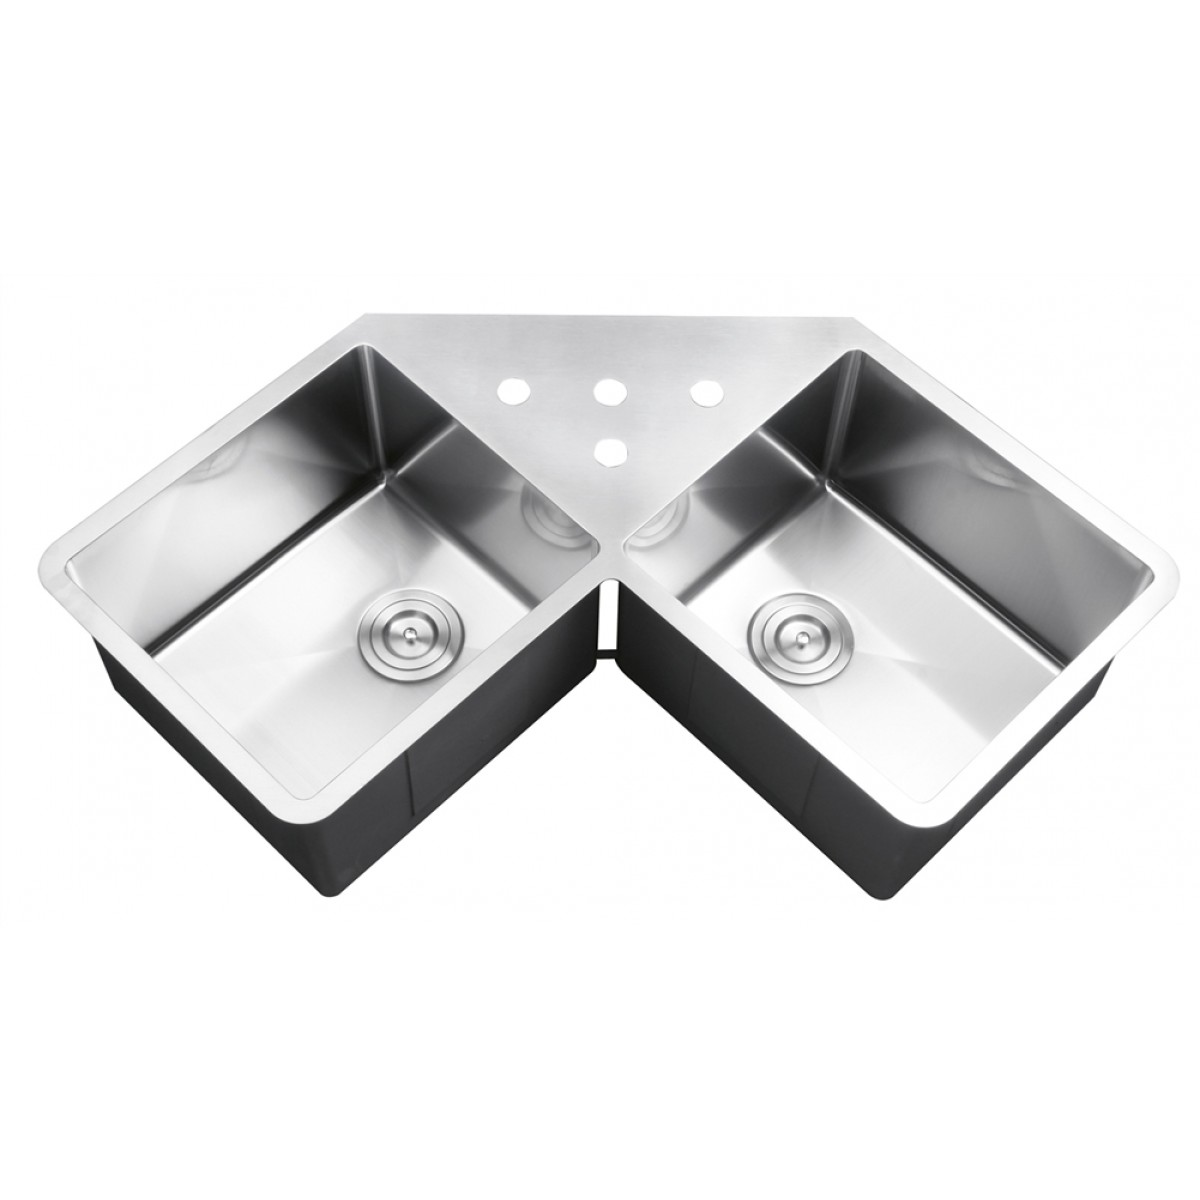 43 Inch Stainless Steel Undermount Erly Corner Double Bowl Kitchen Sink With Free Accessories